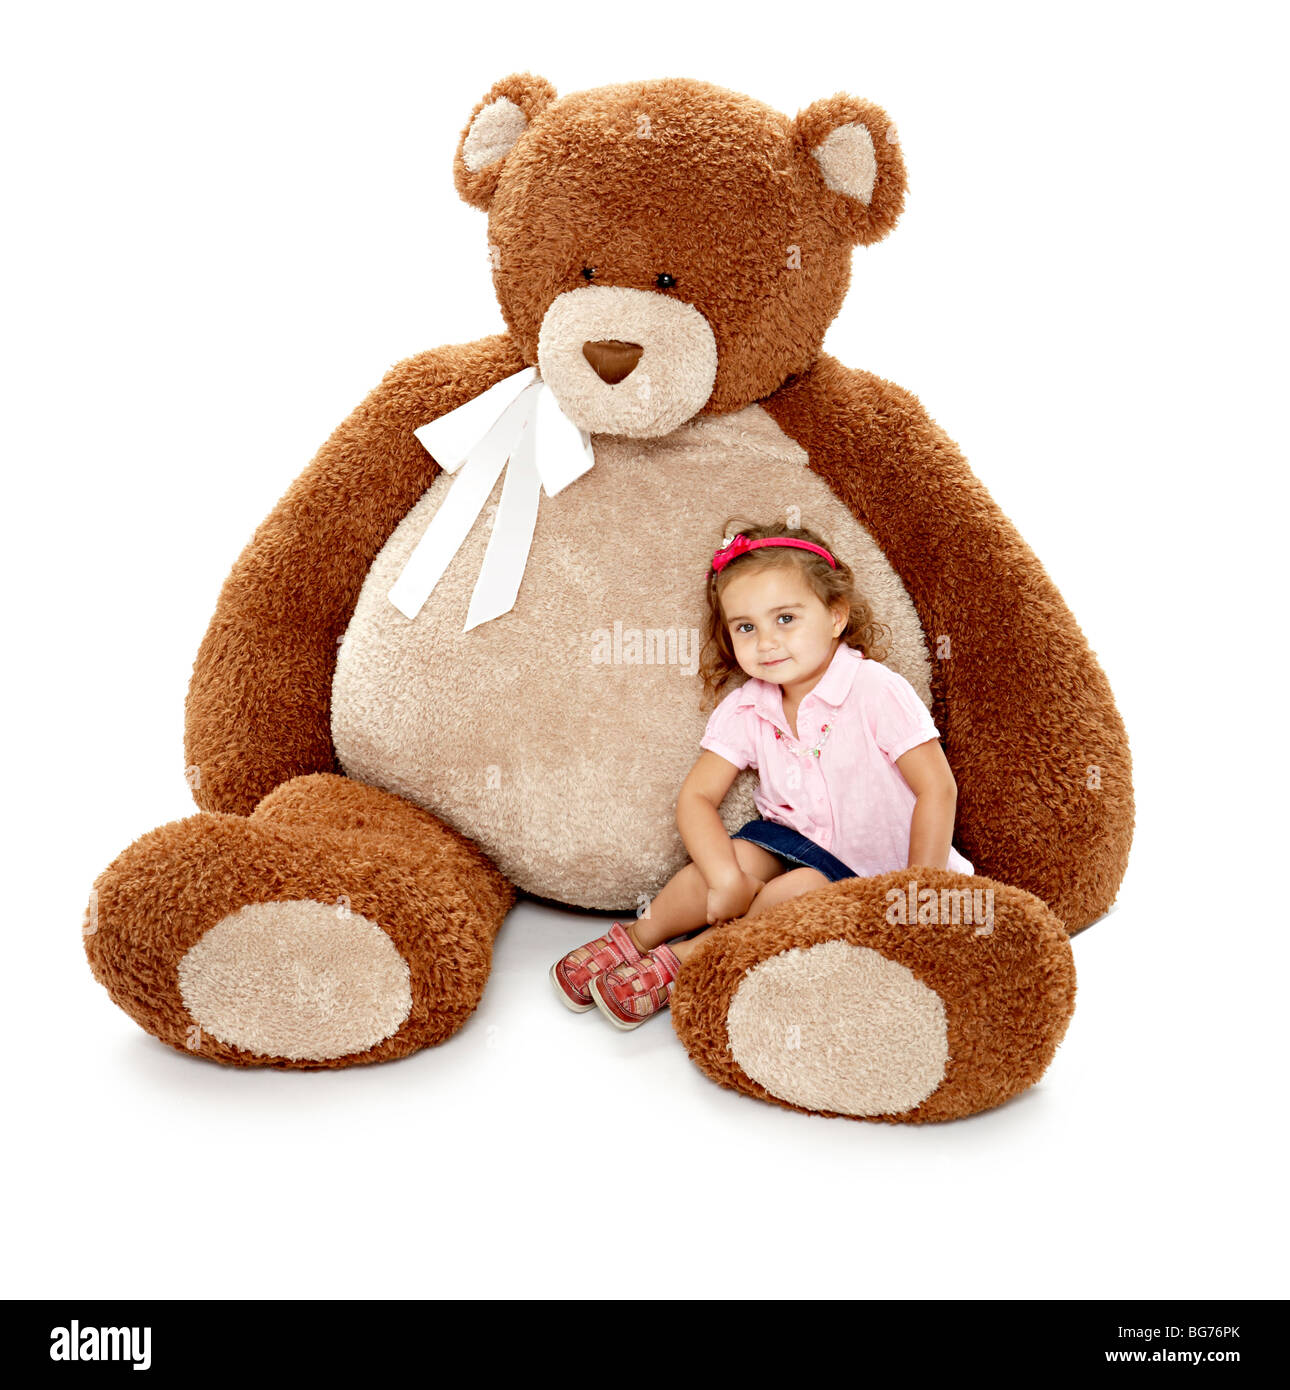 Giant Teddy Bear With Child   Stock Image